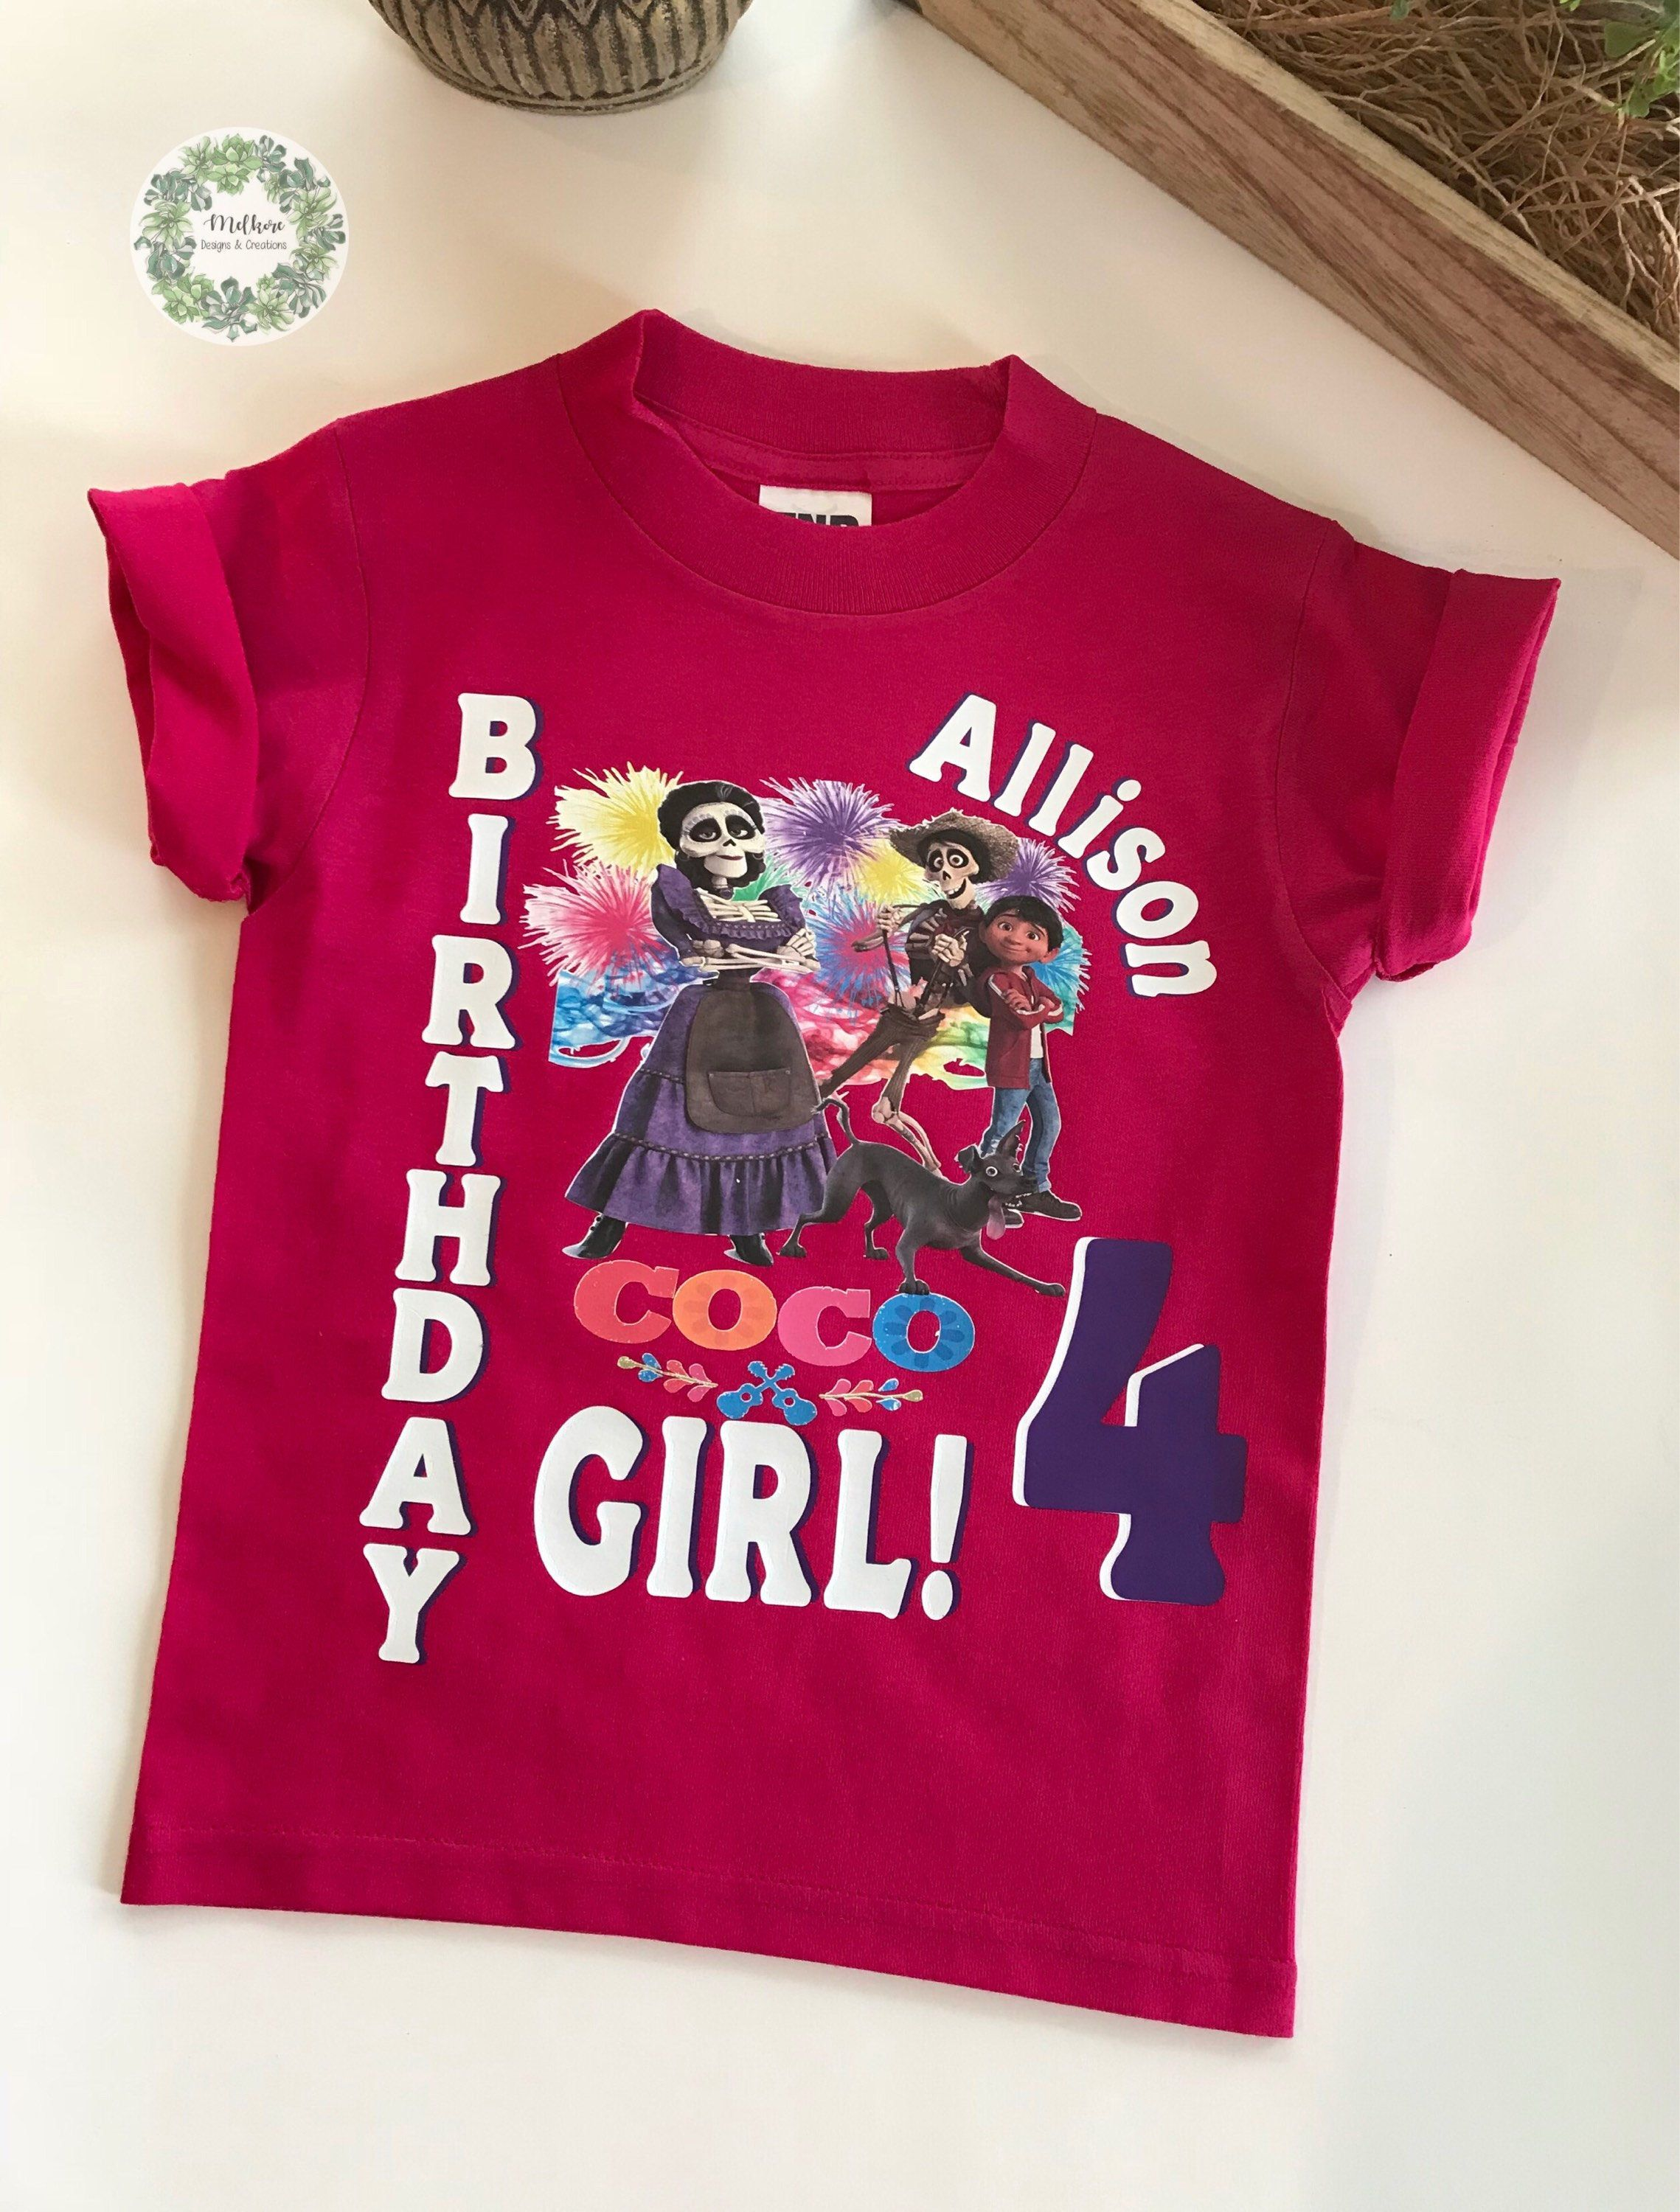 cfb164b1 Excited to share the latest addition to my #etsy shop: Coco t-shirt - Coco  theme birthday - Coco birthday shirt - Coco birthday - Coco mama Imelda